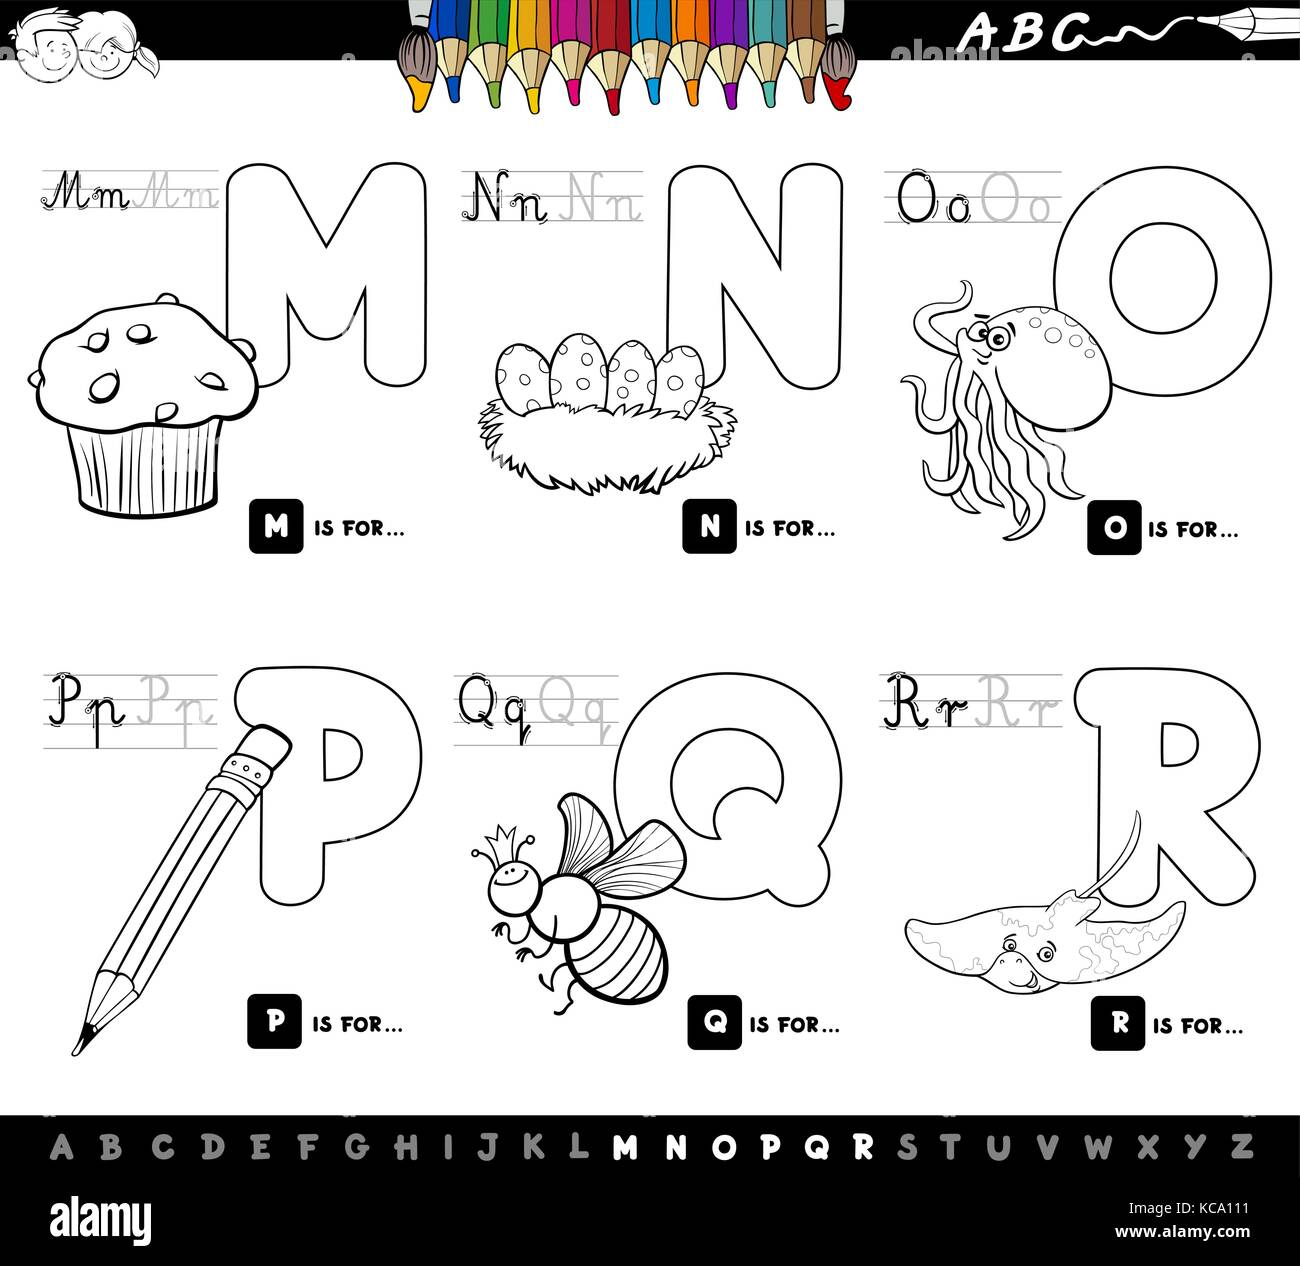 Black And White Cartoon Illustration Of Capital Letters Alphabet Educational Set For Reading Writing Learning Children From M To R Coloring Bo